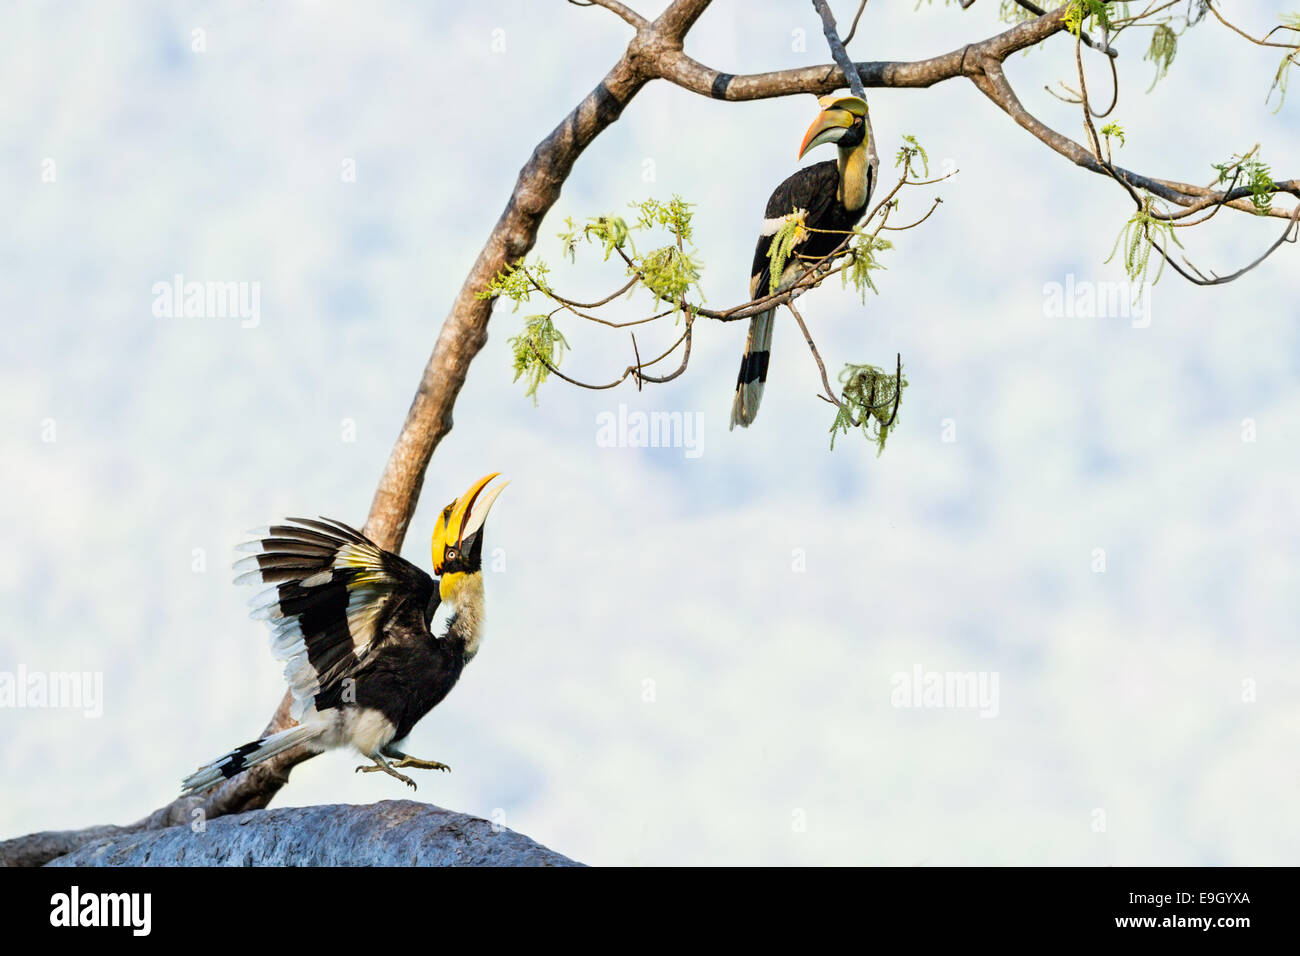 A displaying Great hornbill (Buceros bicornis) observed by another in tropical rainforest canopy - Stock Image